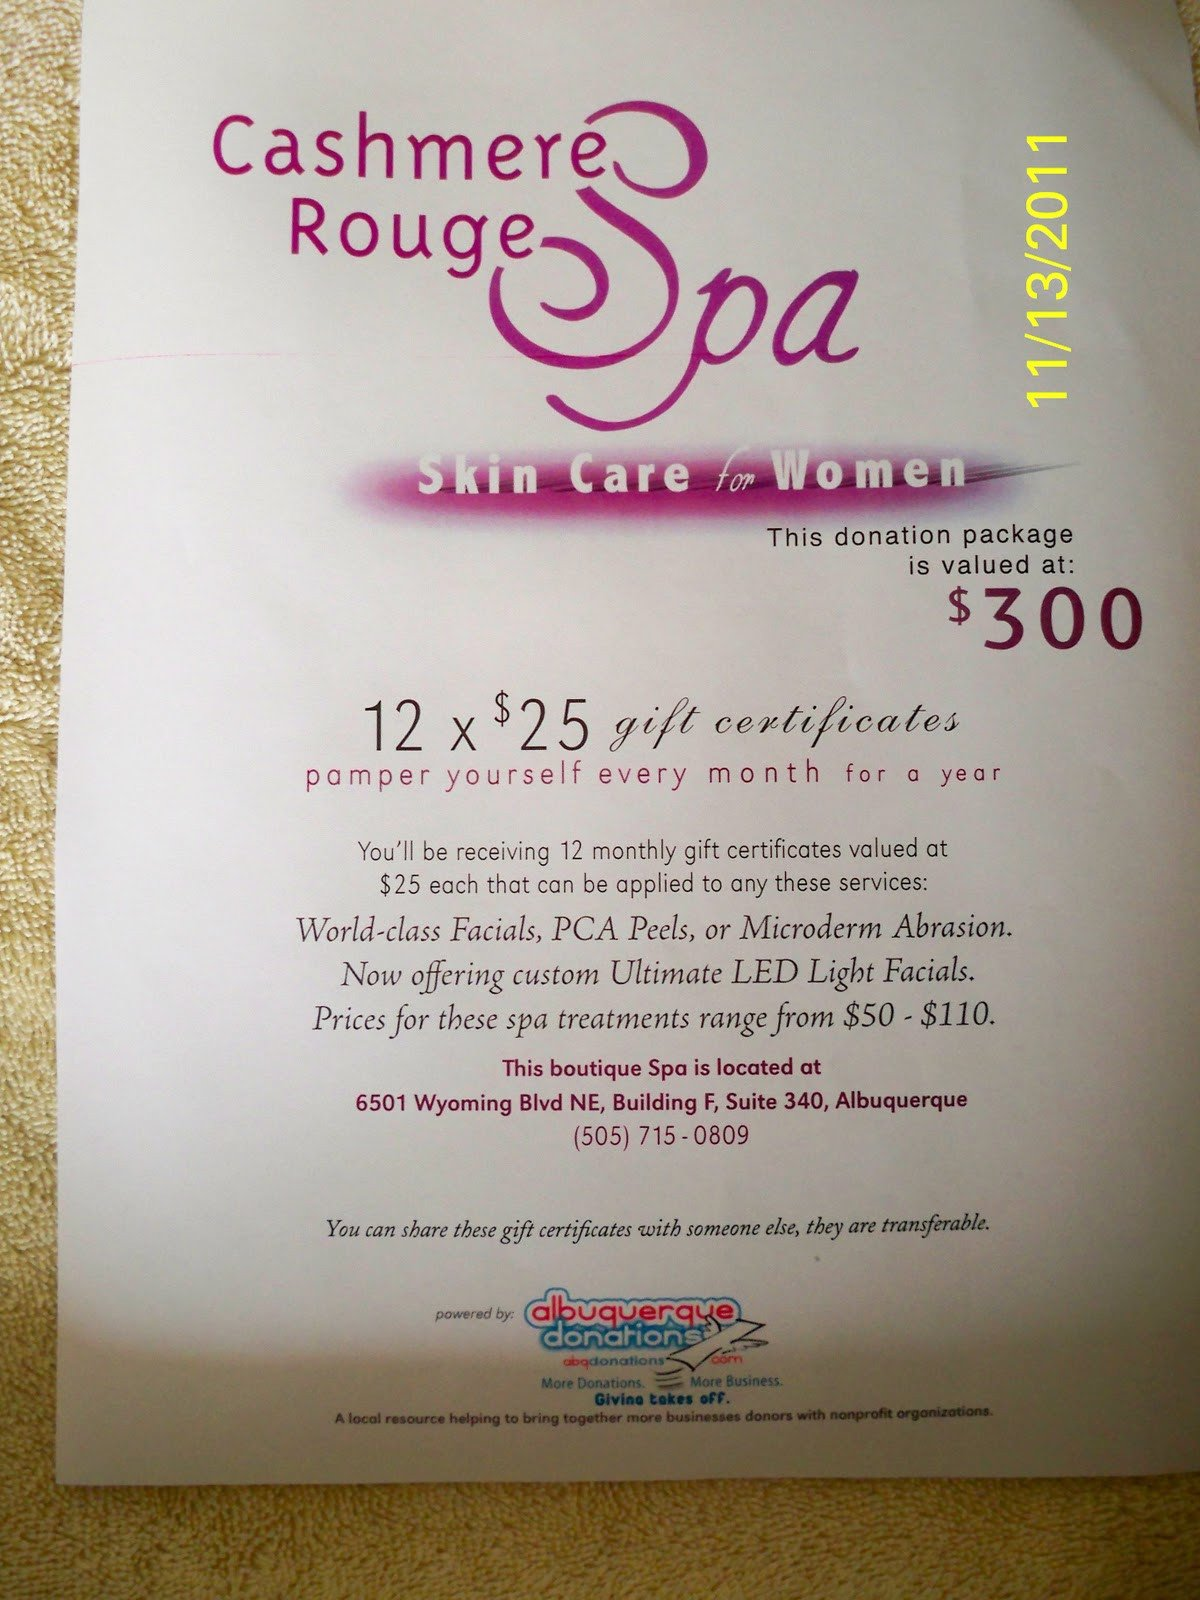 Silent Auction Gift Certificate Template Relentless for A Cure Silent Auction Cashmere Rouge Spa